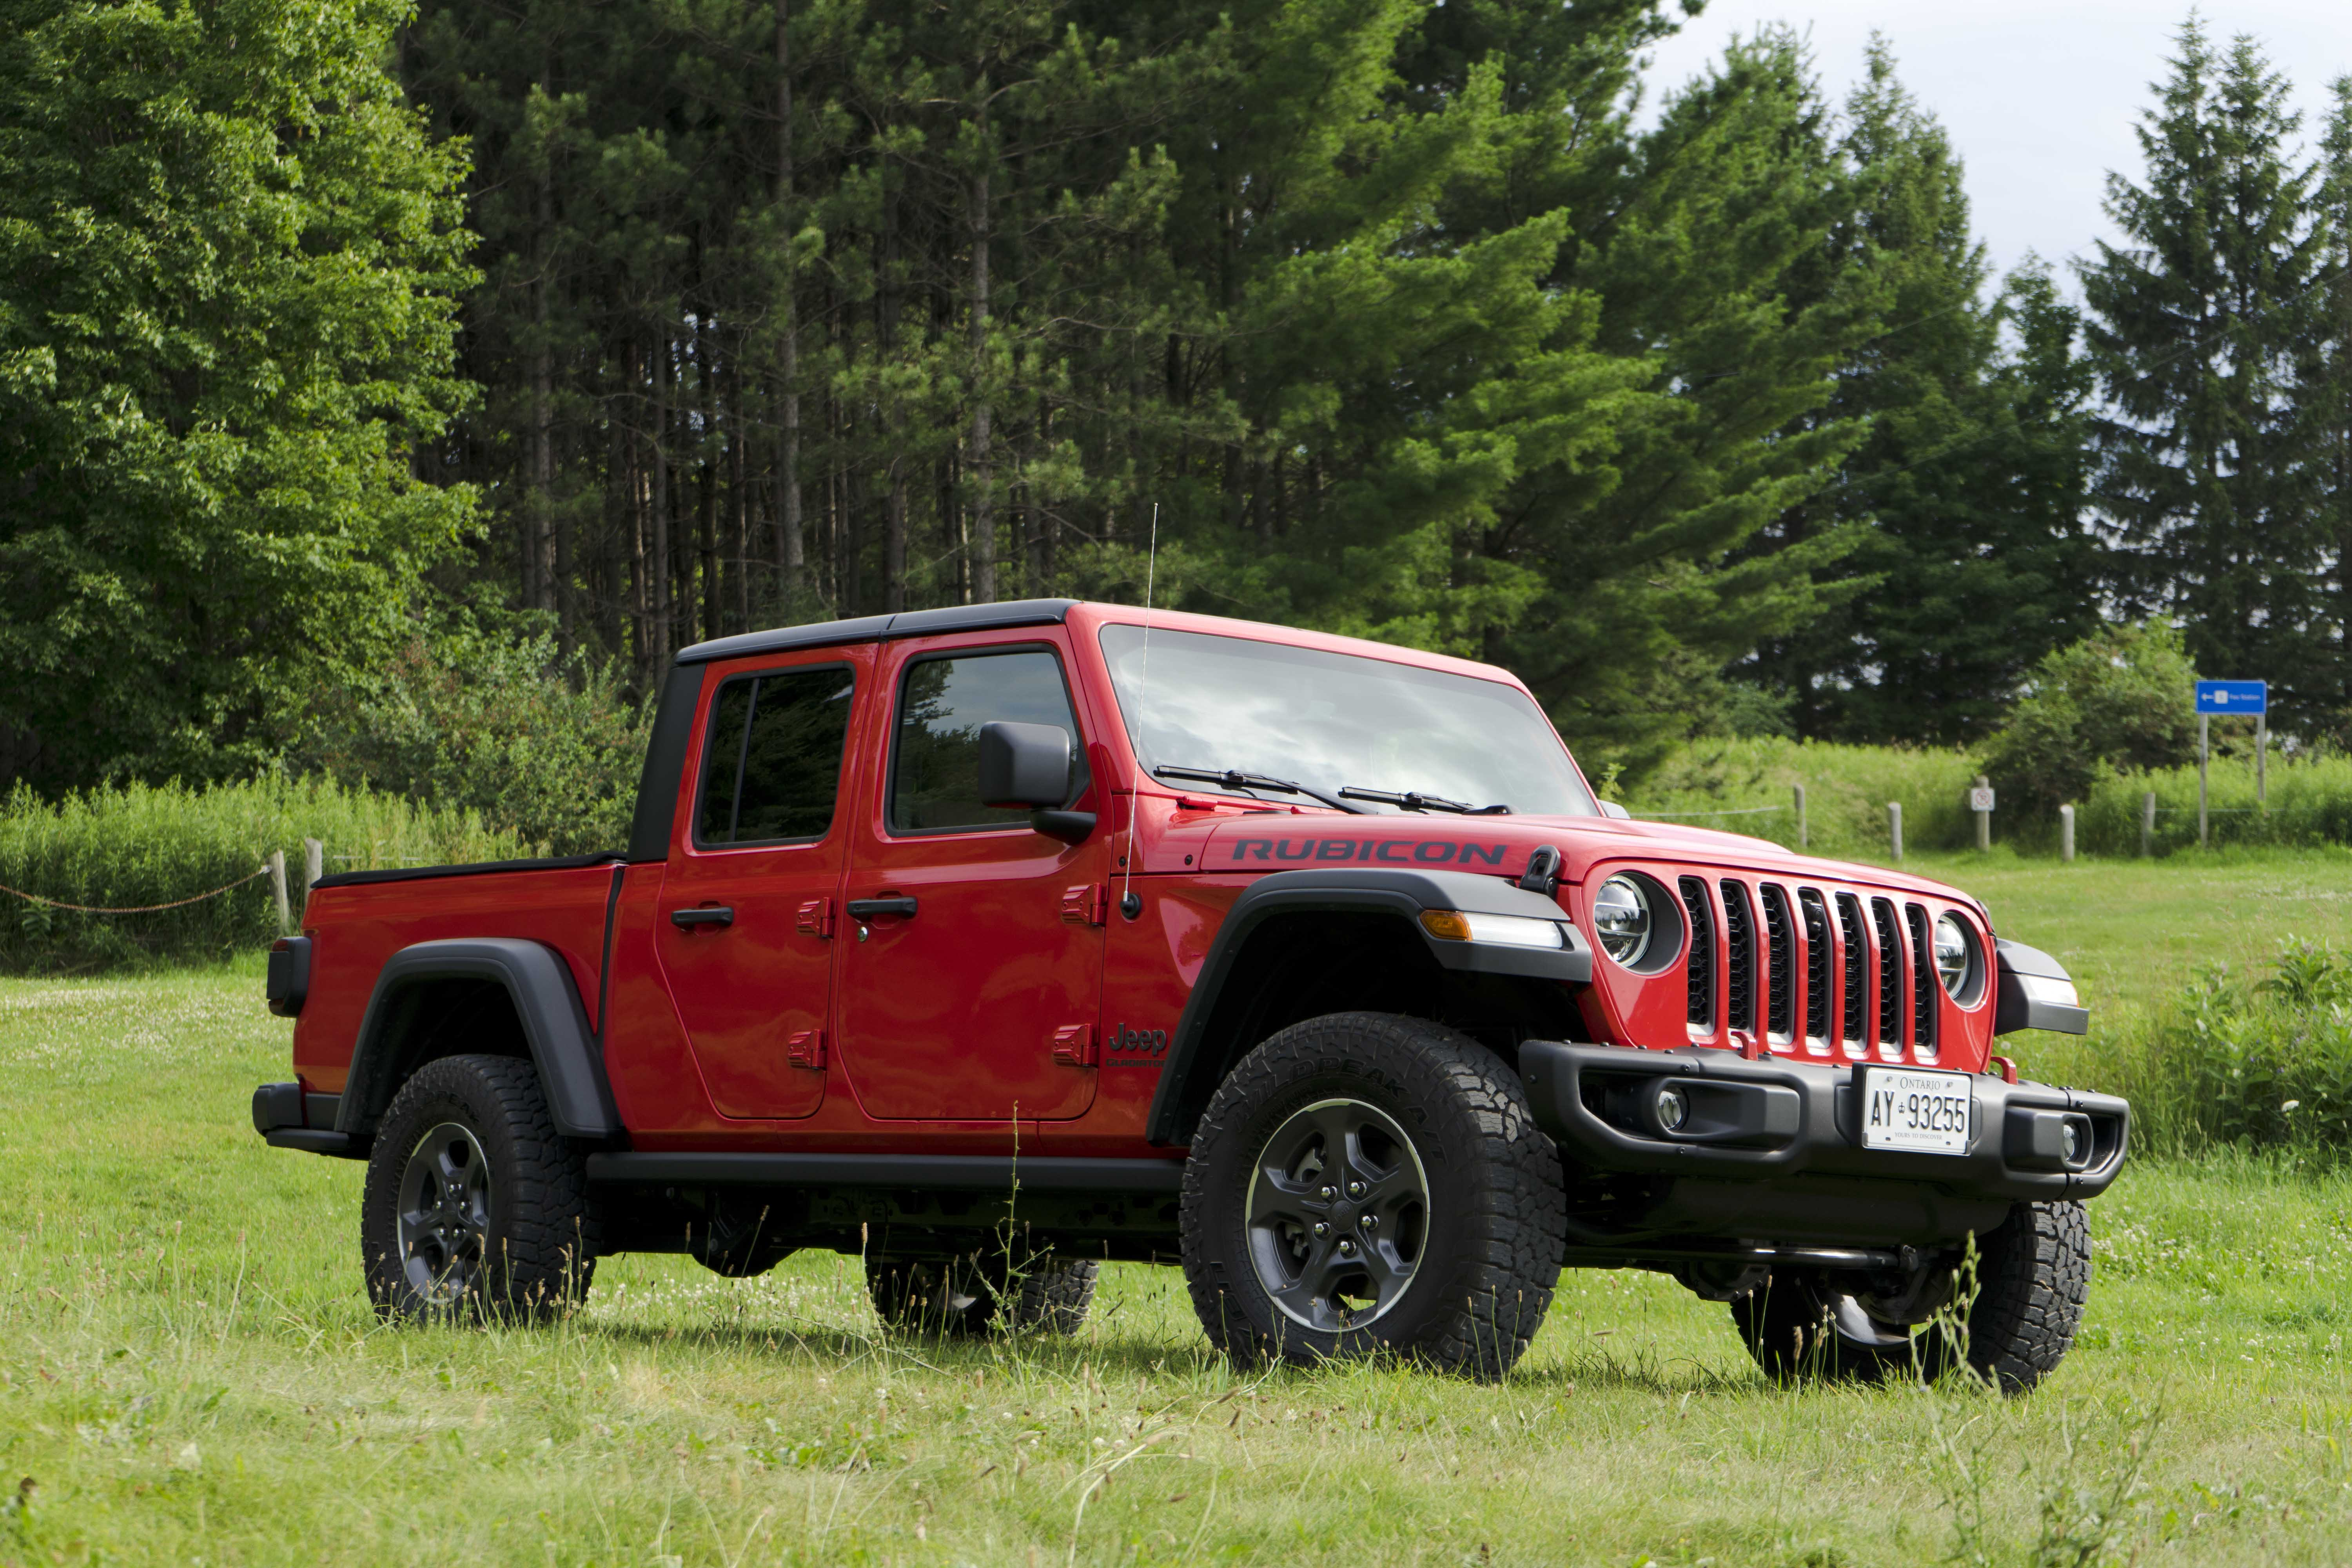 Review: 2020 Jeep Gladiator Rubicon – WHEELS.ca